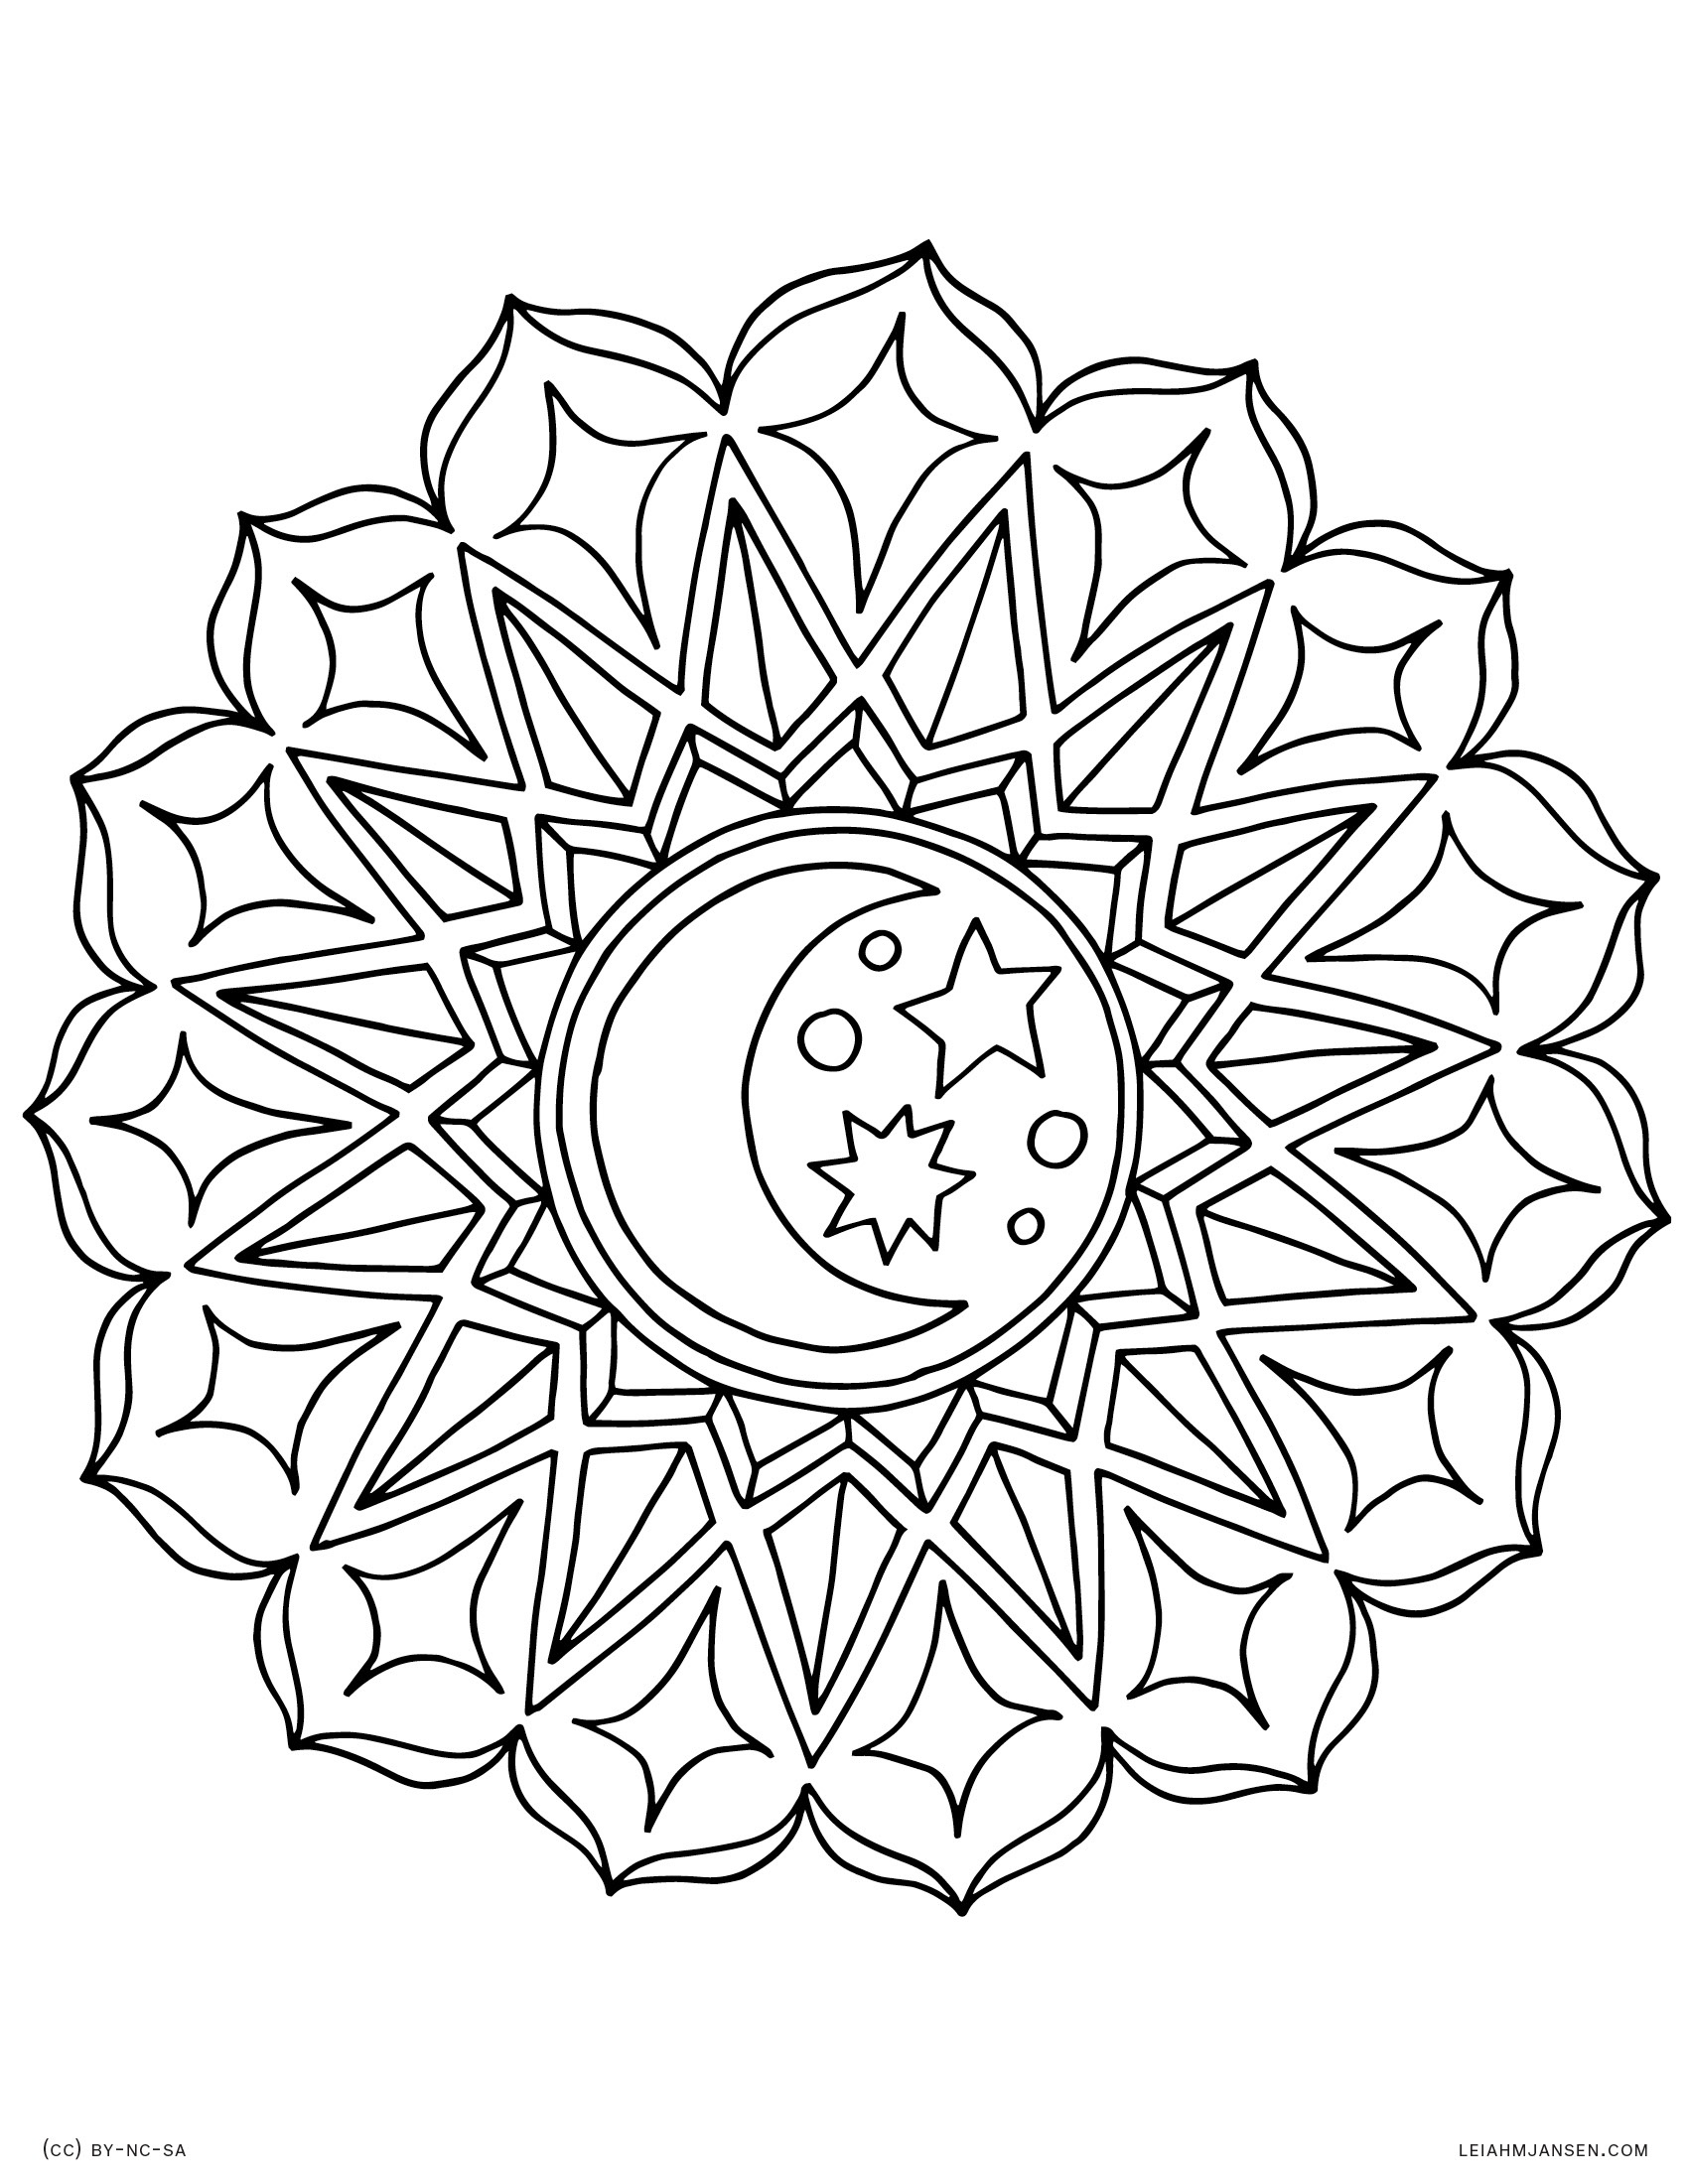 Coloring Pages - Free Printable Mandala Coloring Pages